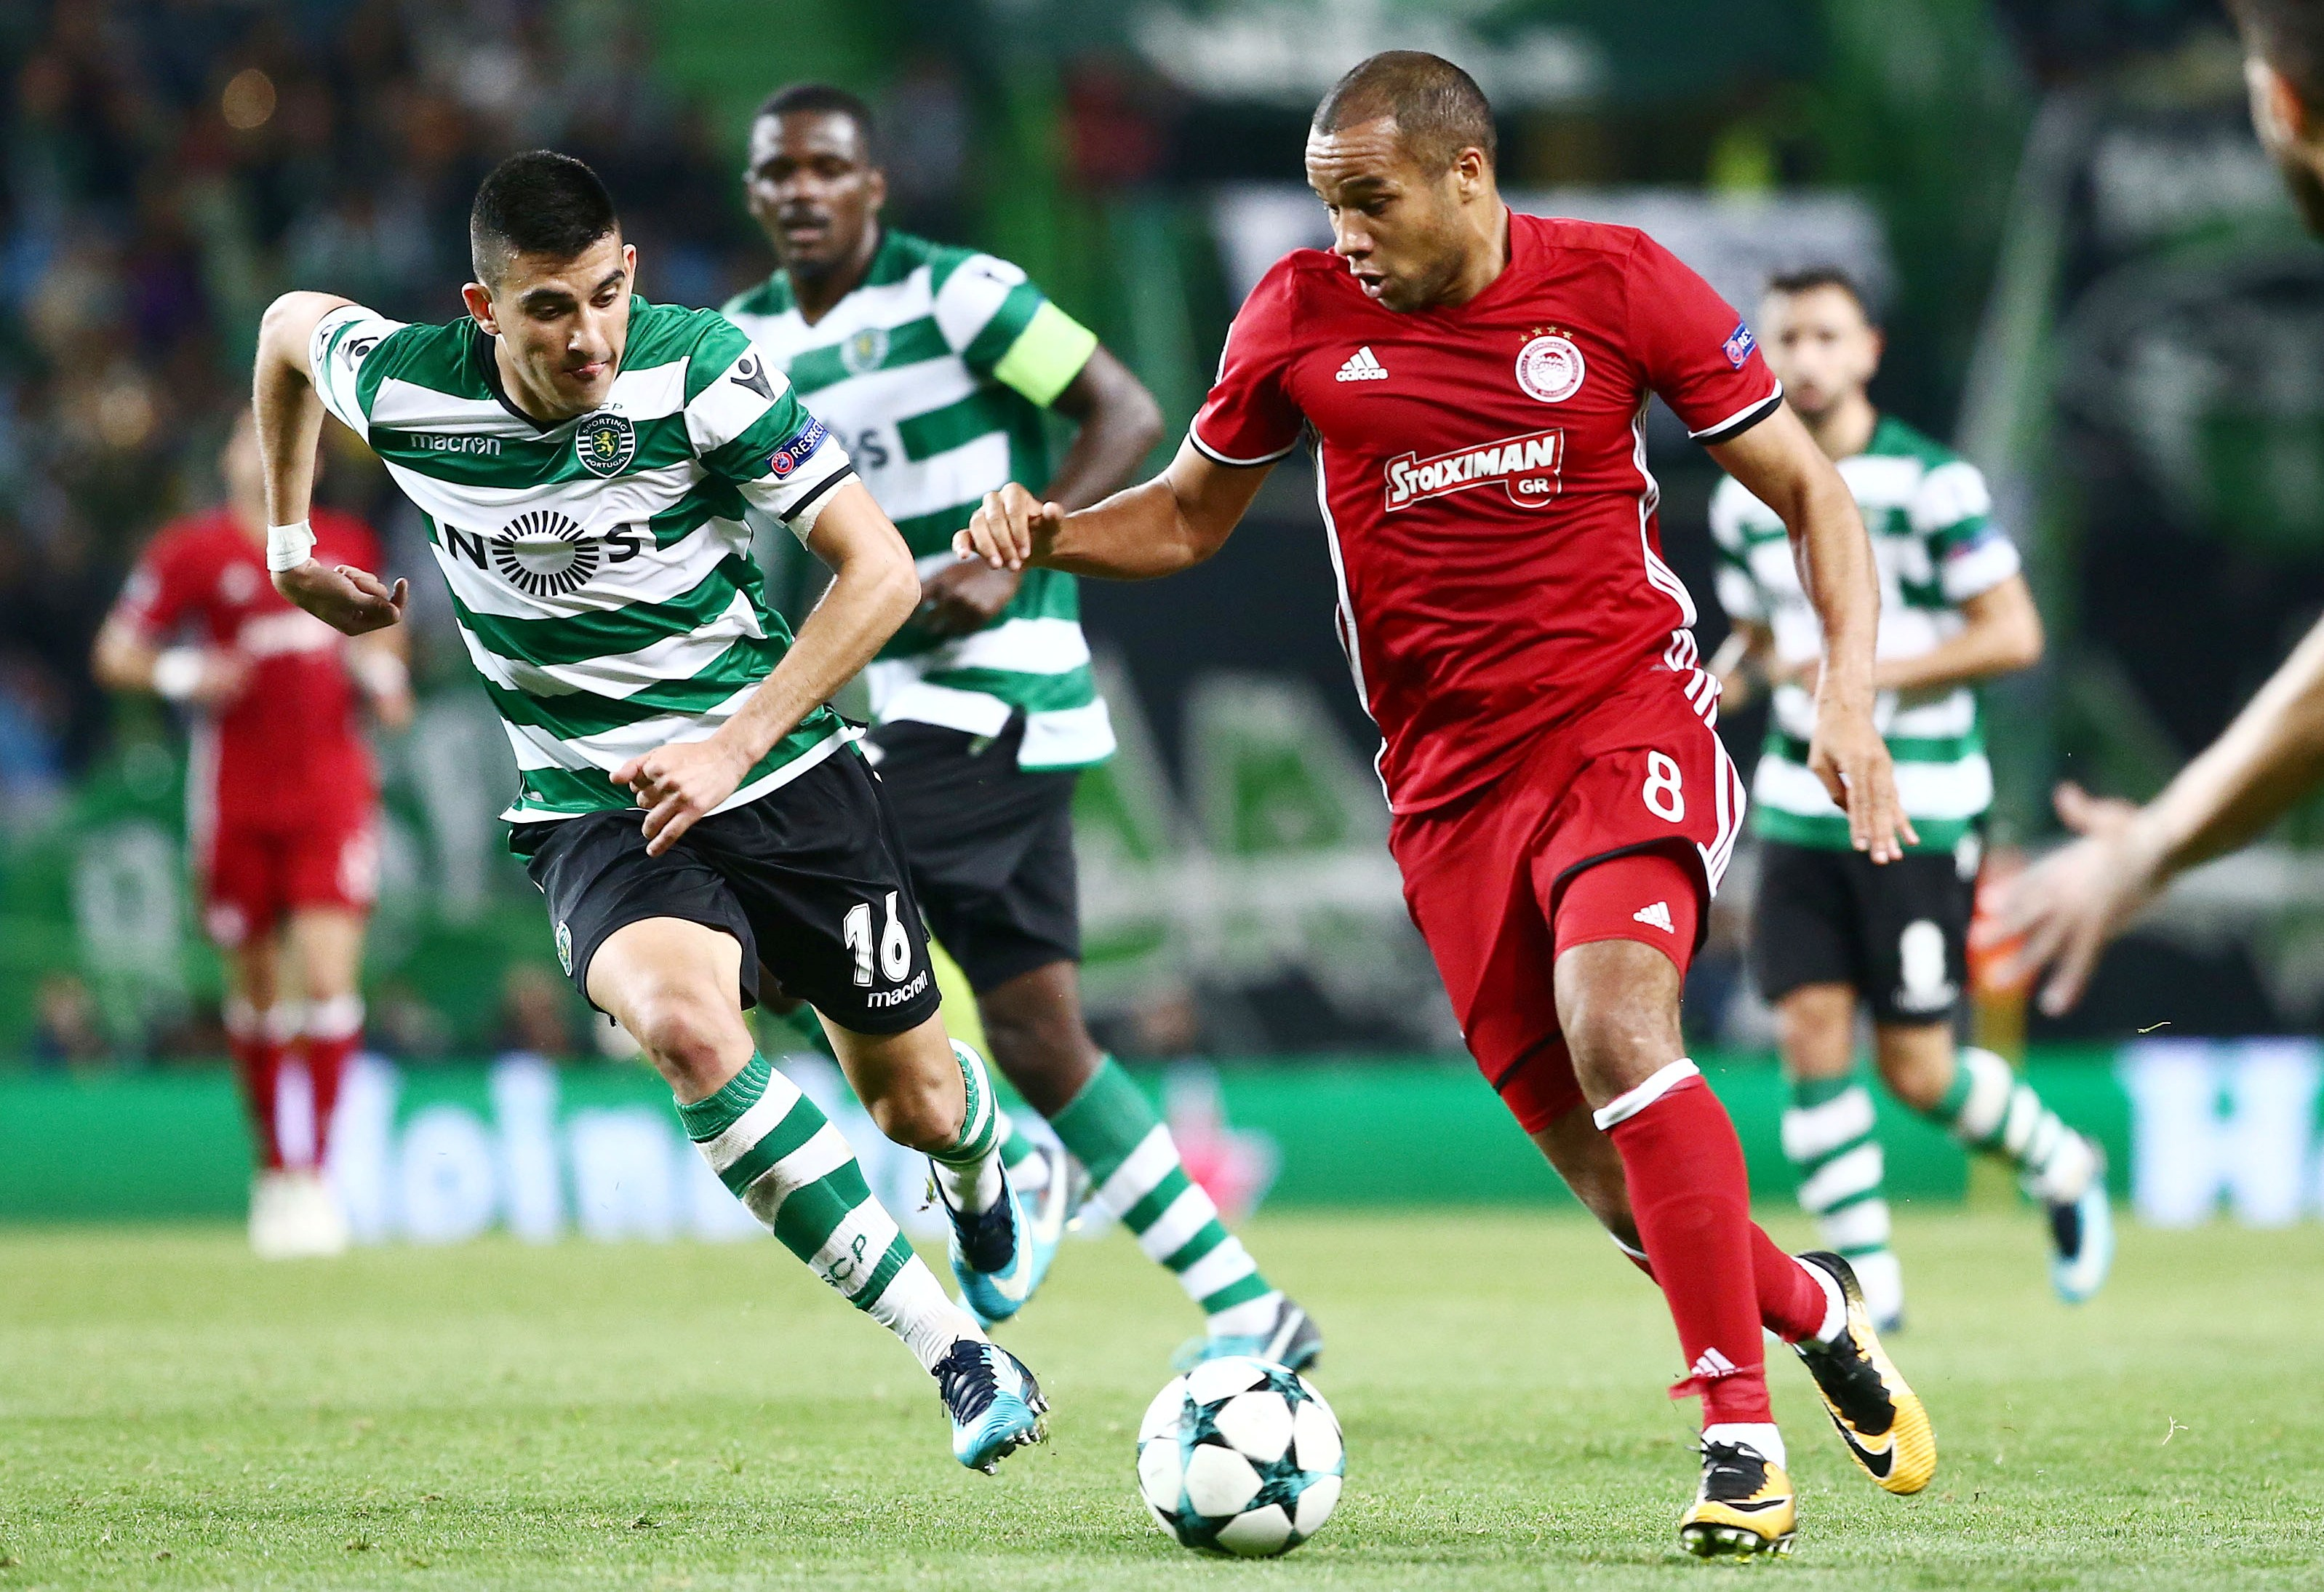 Sporting – Olympiacos 3-1